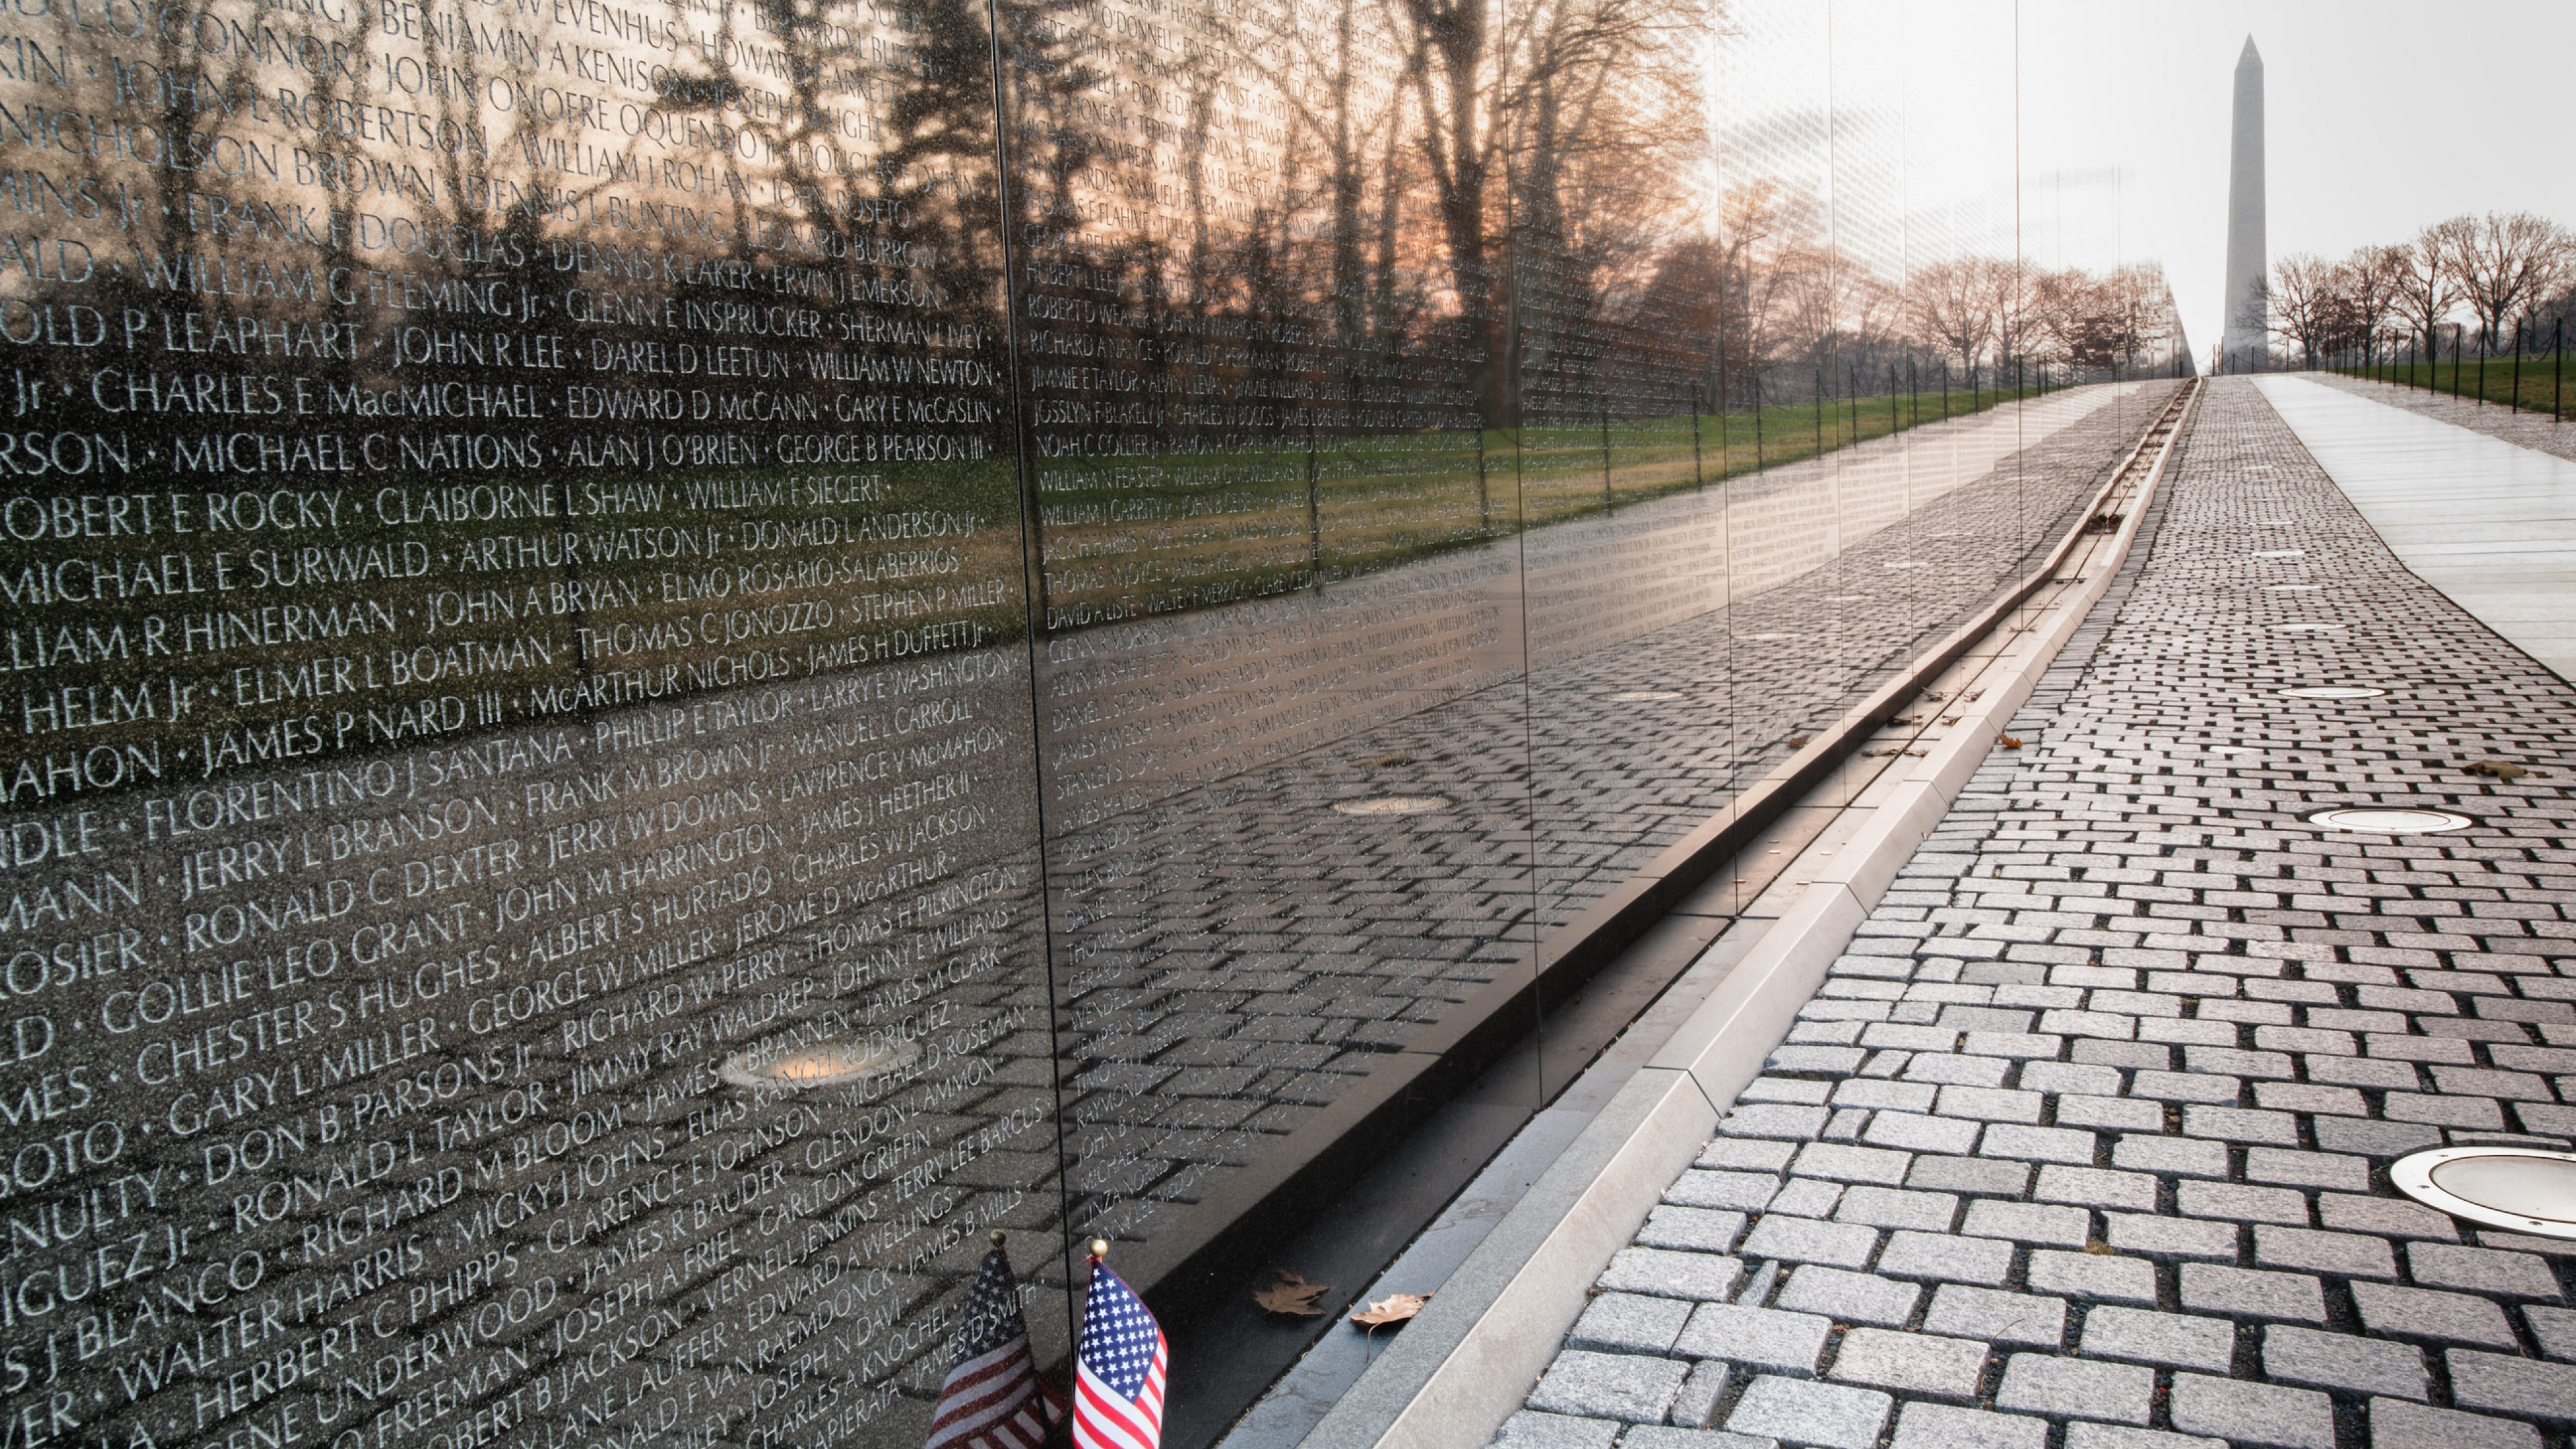 Small American flag against the Vietnam Memorial with the Washington Memorial in the background